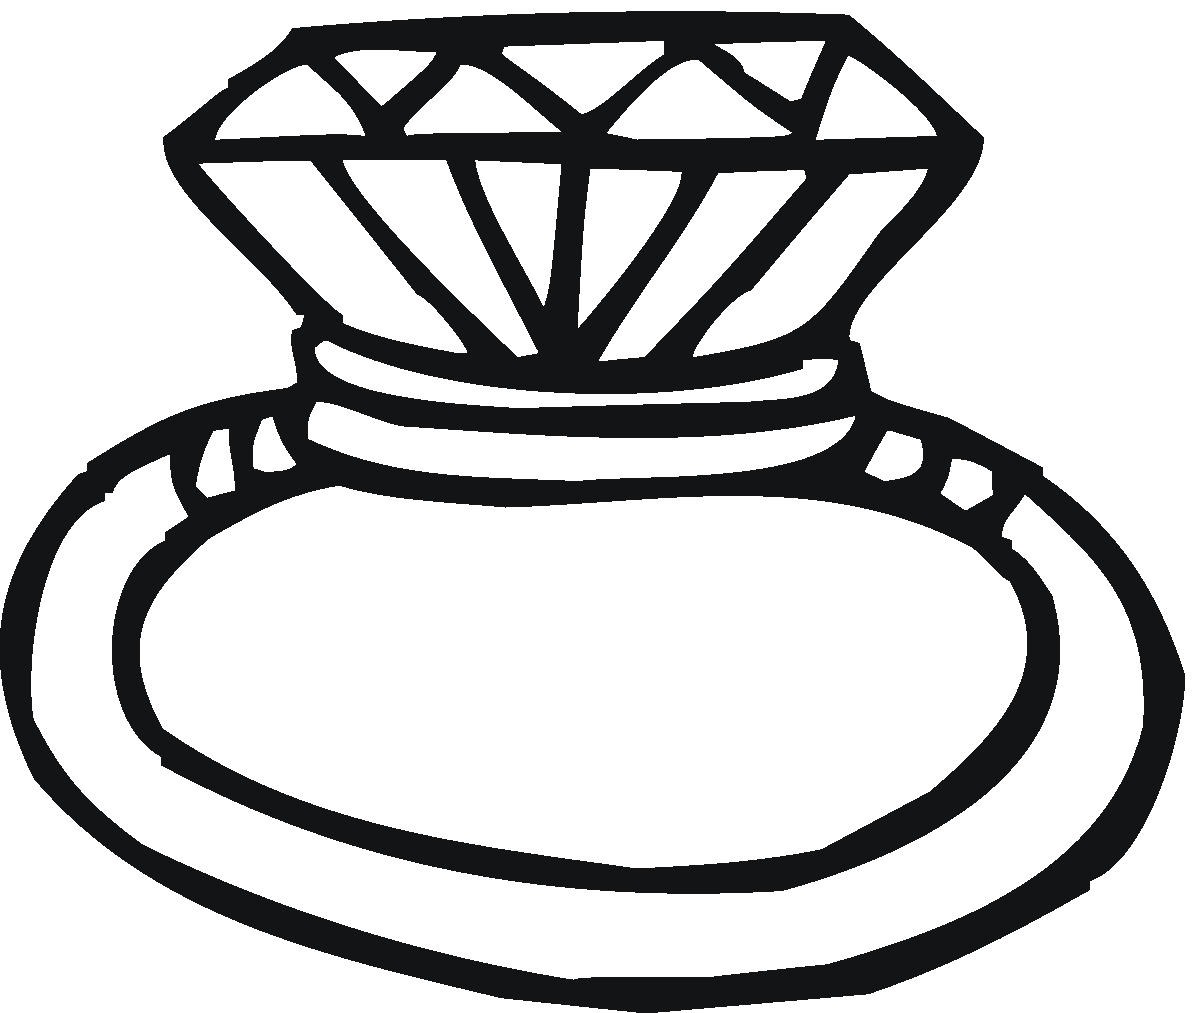 Ring black and white clipart » Clipart Station.